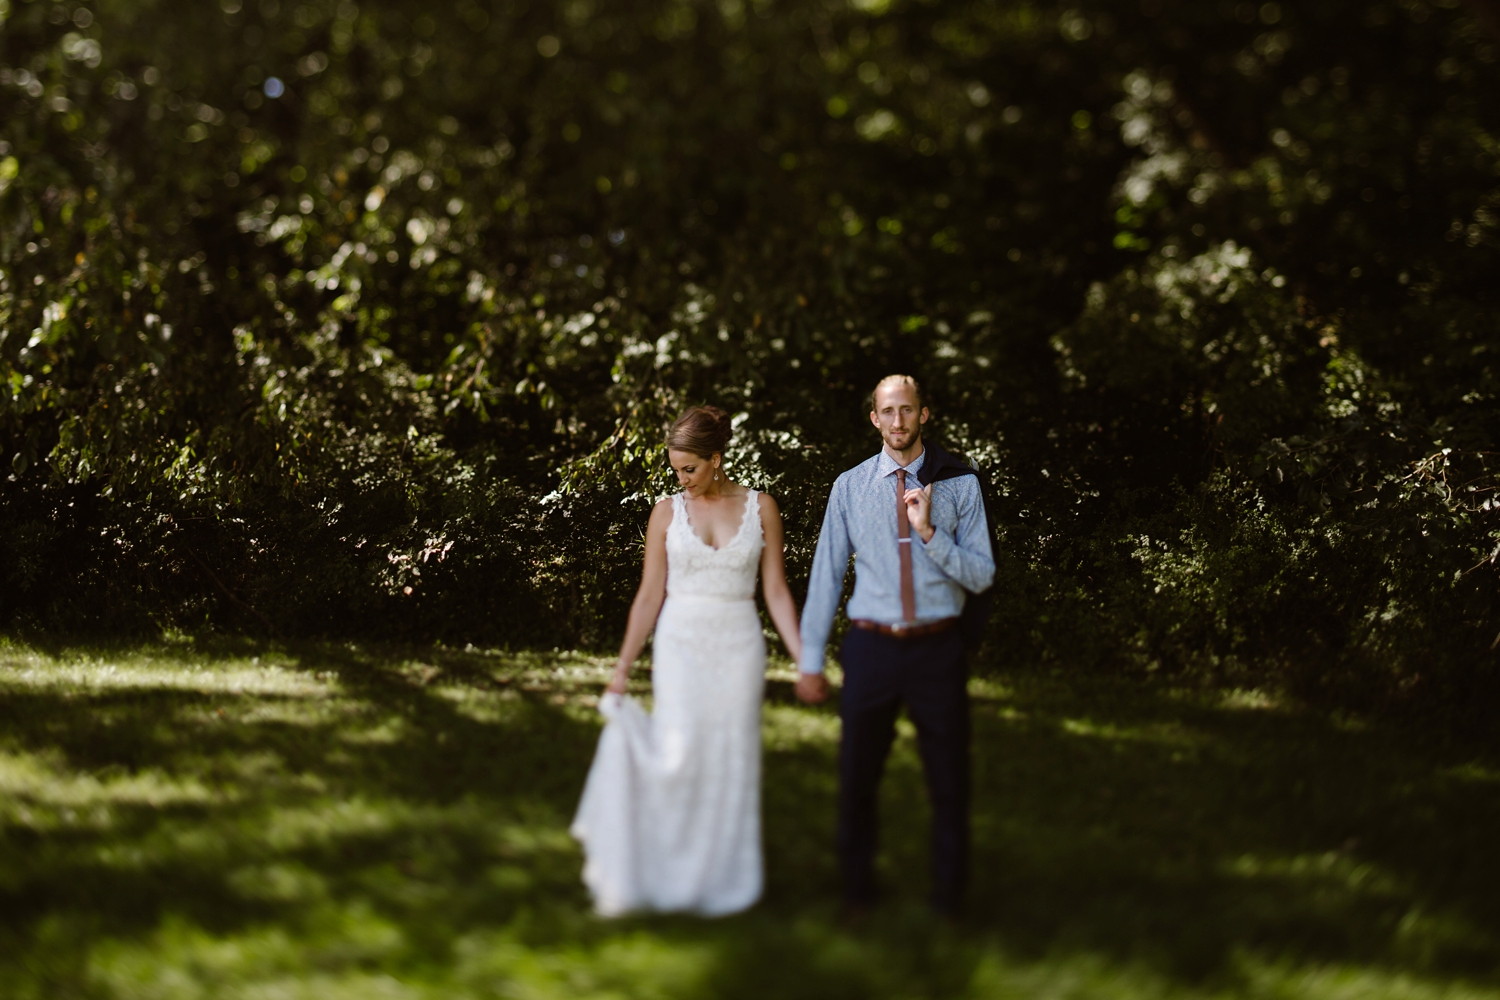 wedding photography with movement